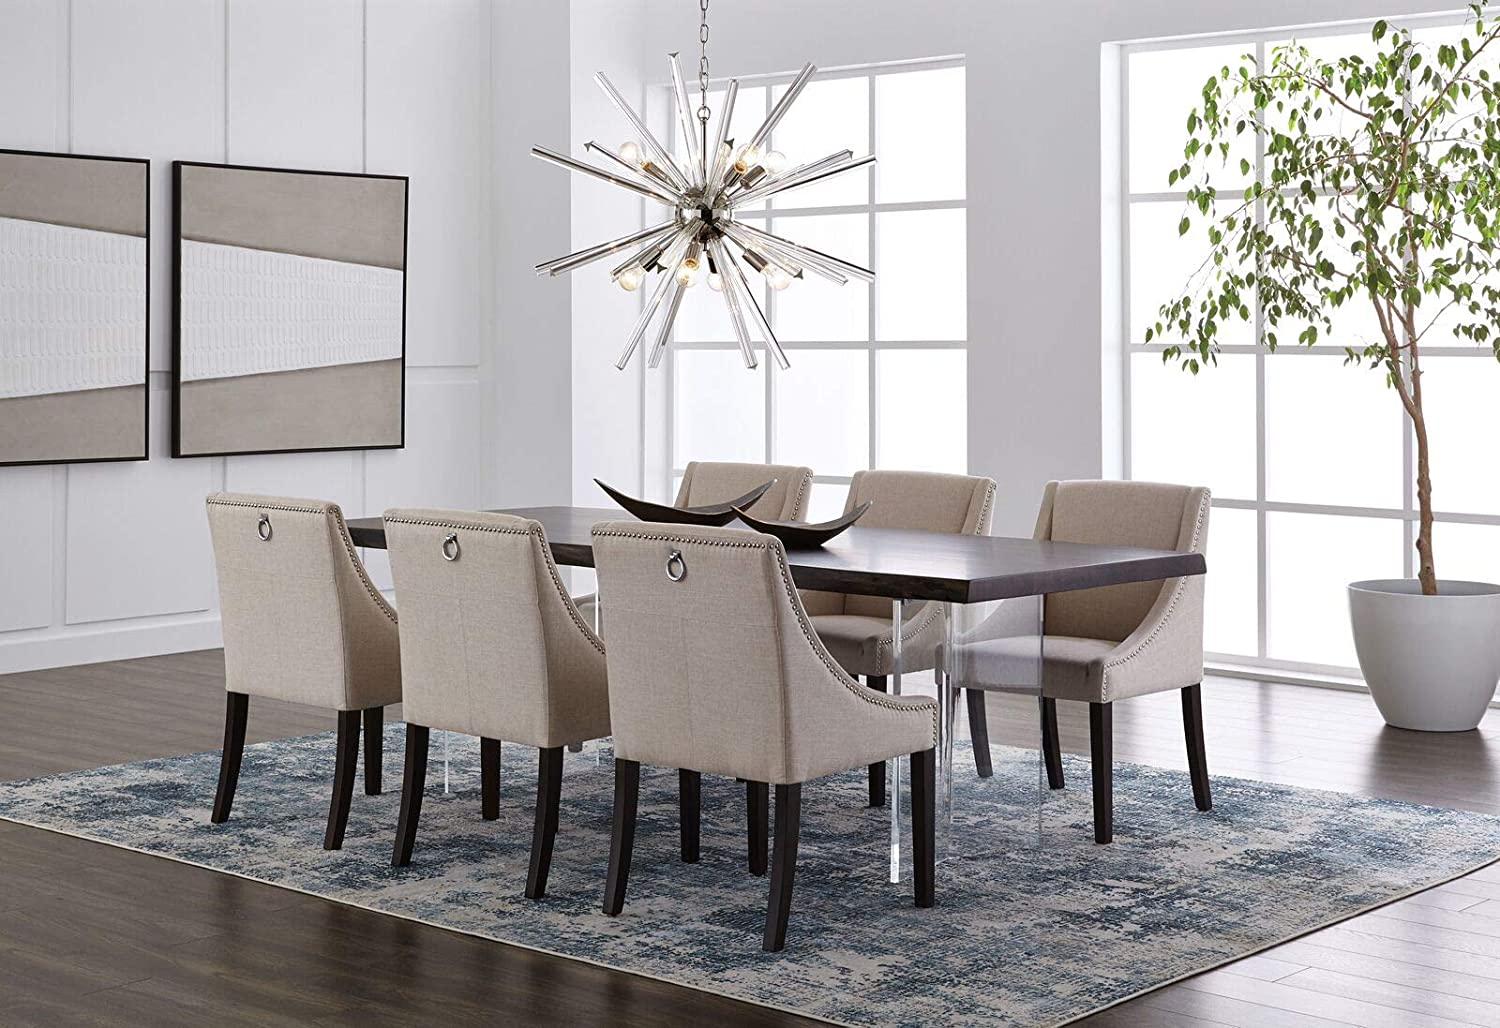 Sunpan 62283 5West Dining Chairs Ivory